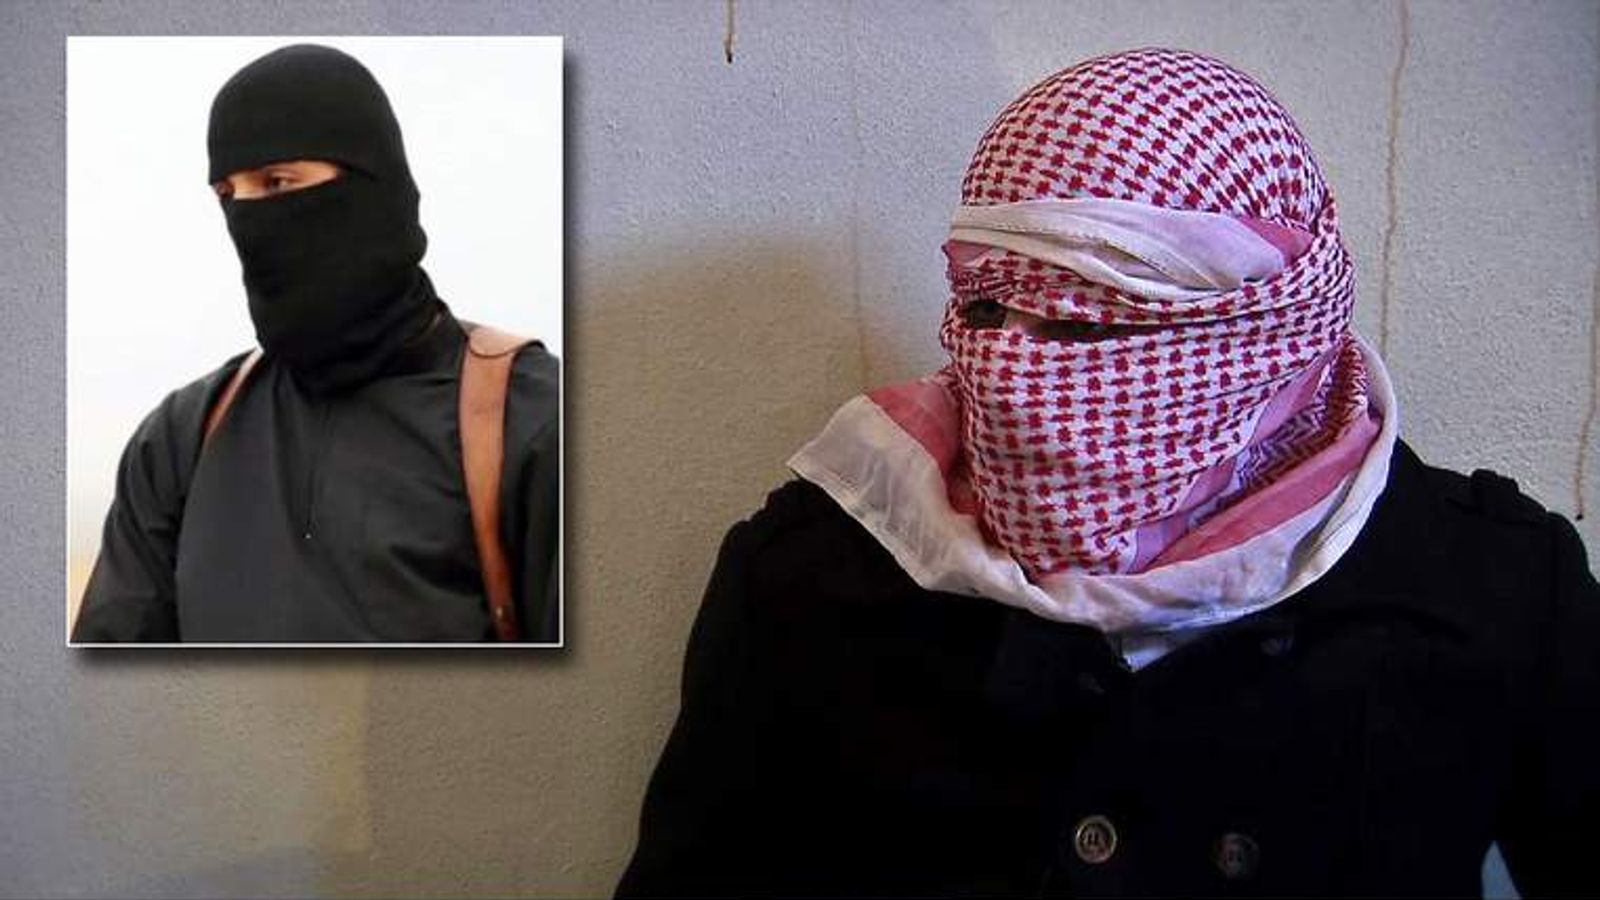 IS translator who has defected claims to have seen Jihadi John kill hostage